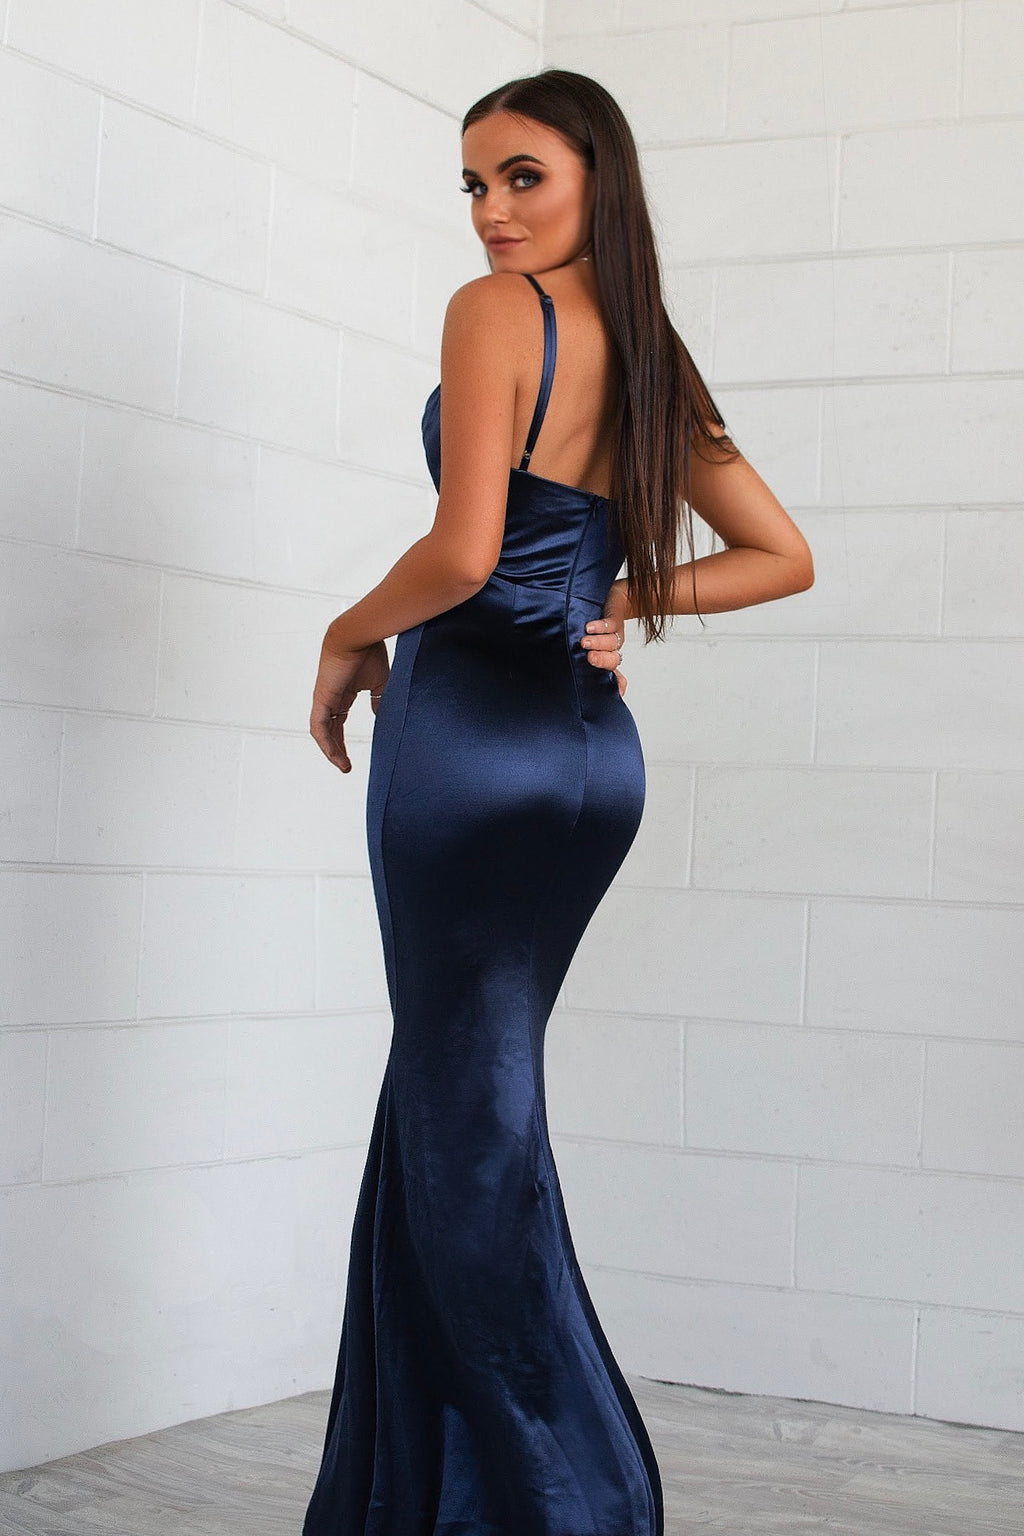 Hollywood Formal Gown - Navy - Runway Goddess